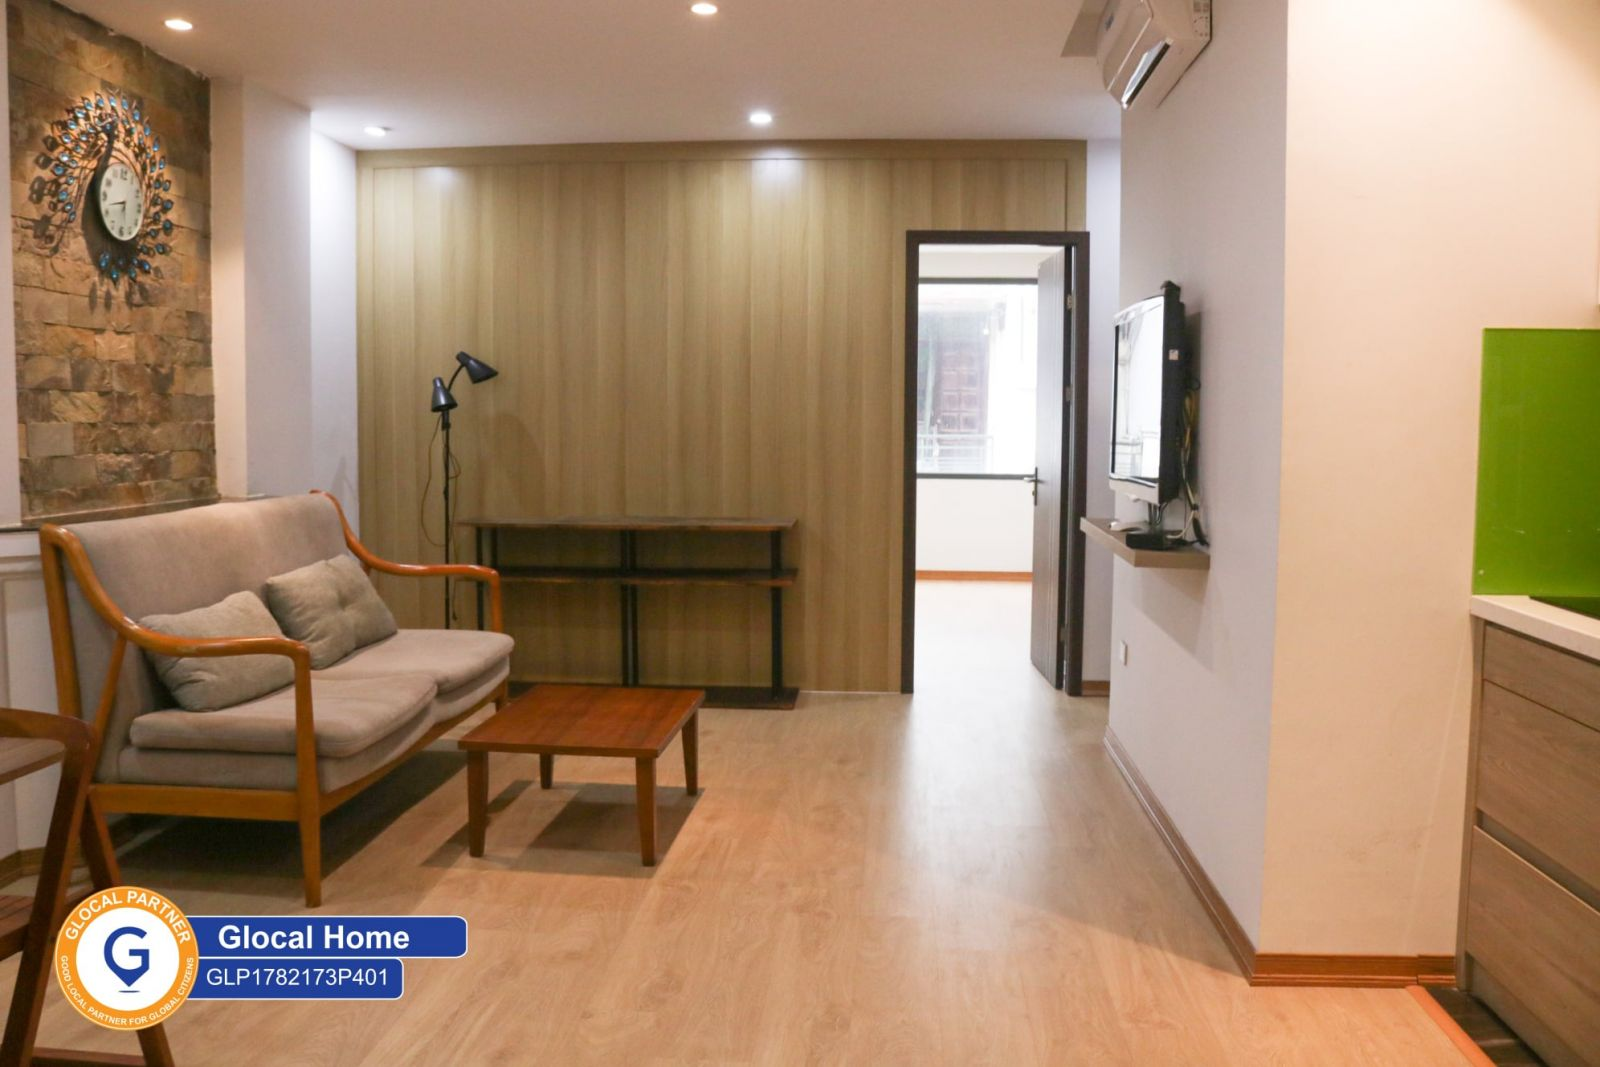 One bed room with large terrace and nice view in Nguyen Khac Hieu Street